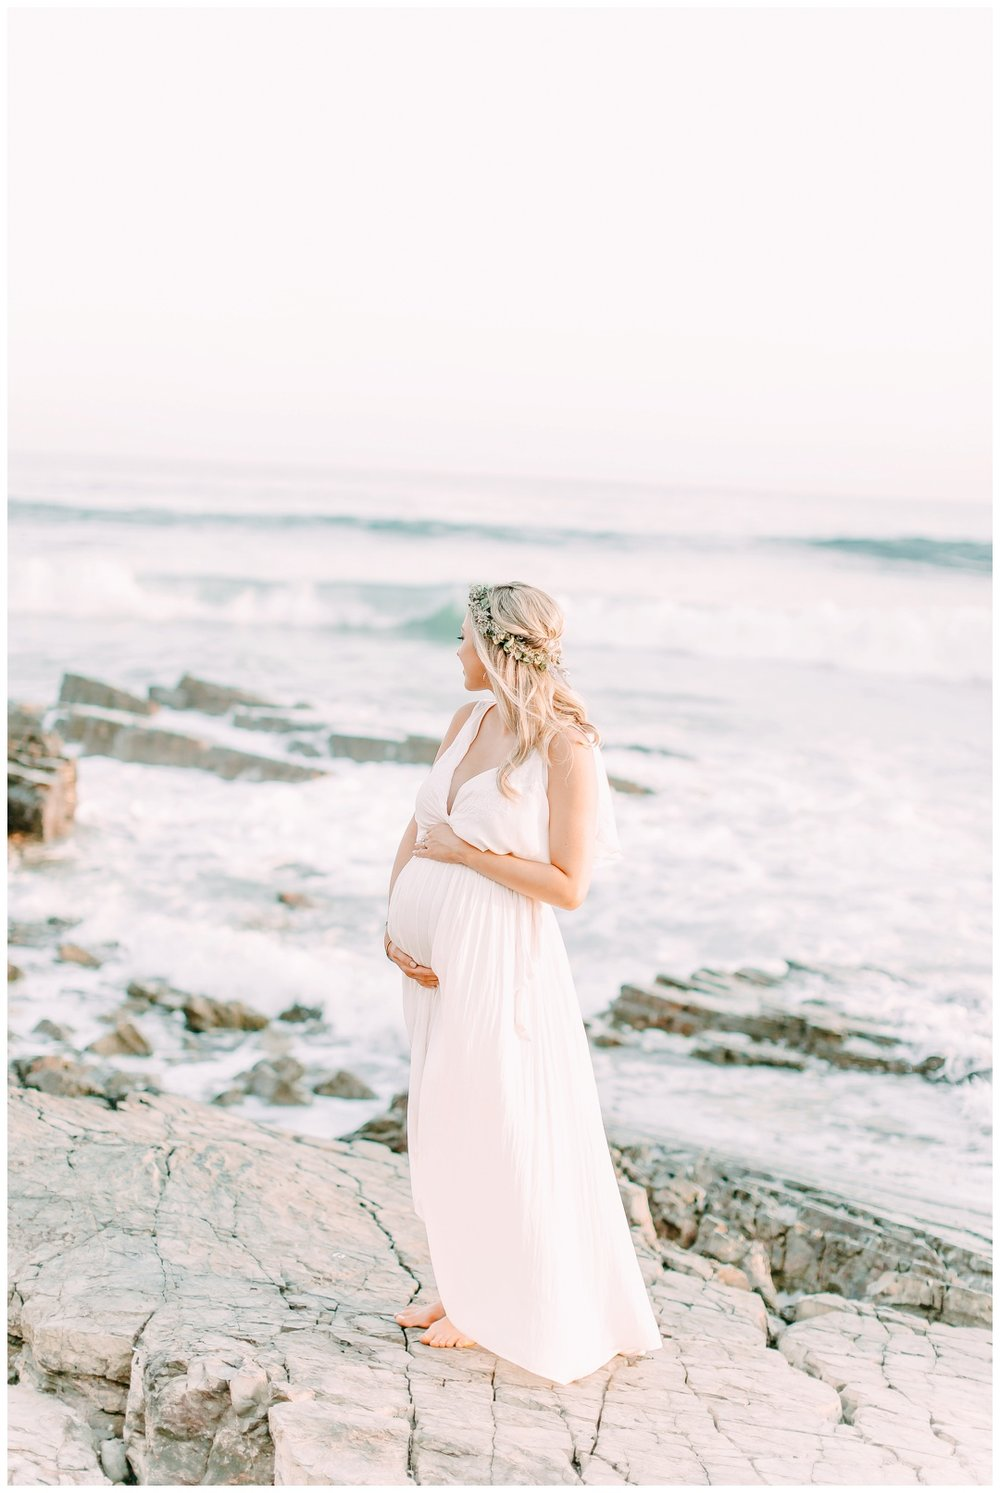 Newport_Beach_Newborn_Lifetsyle_Photographer_Orange_County_Family_Photography_Cori_Kleckner_Photography_Orange_County_Family_Photographer_Newborn_Photos_Session__1284.jpg